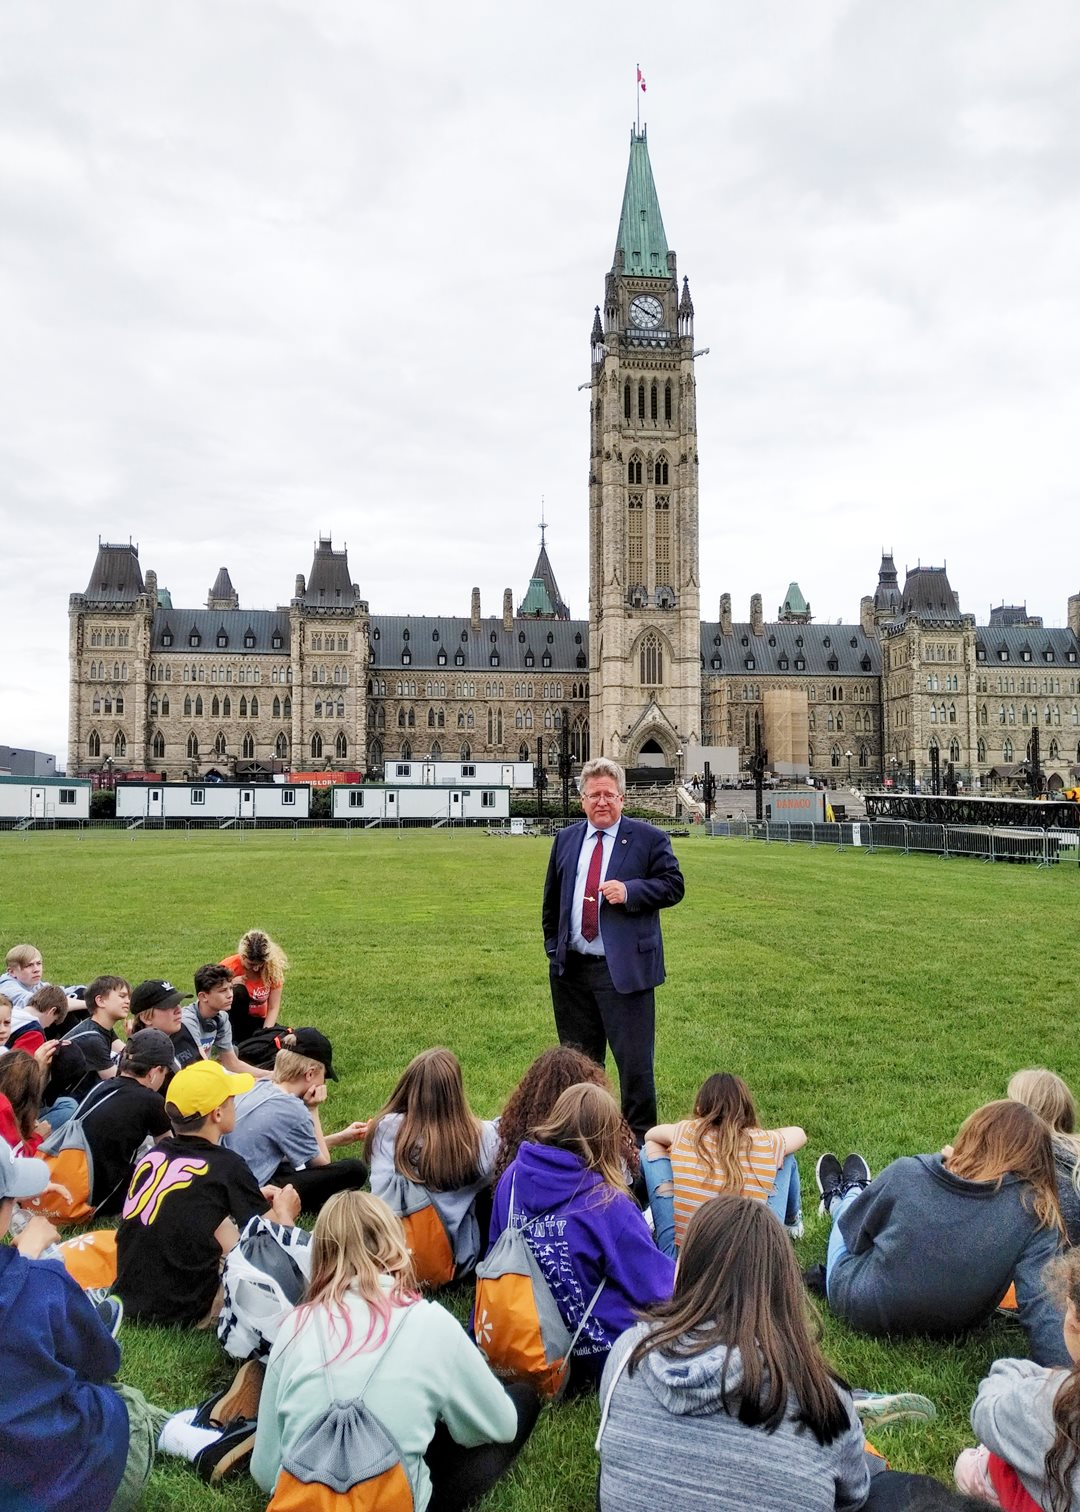 Thursday, June 13, 2019 — On the lawn of Parliament Hill, Senator Rob Black speaks to Grade 8 students from Island Lake Public School in Orangeville, Ontario, about the role of the Senate during their visit to Ottawa.